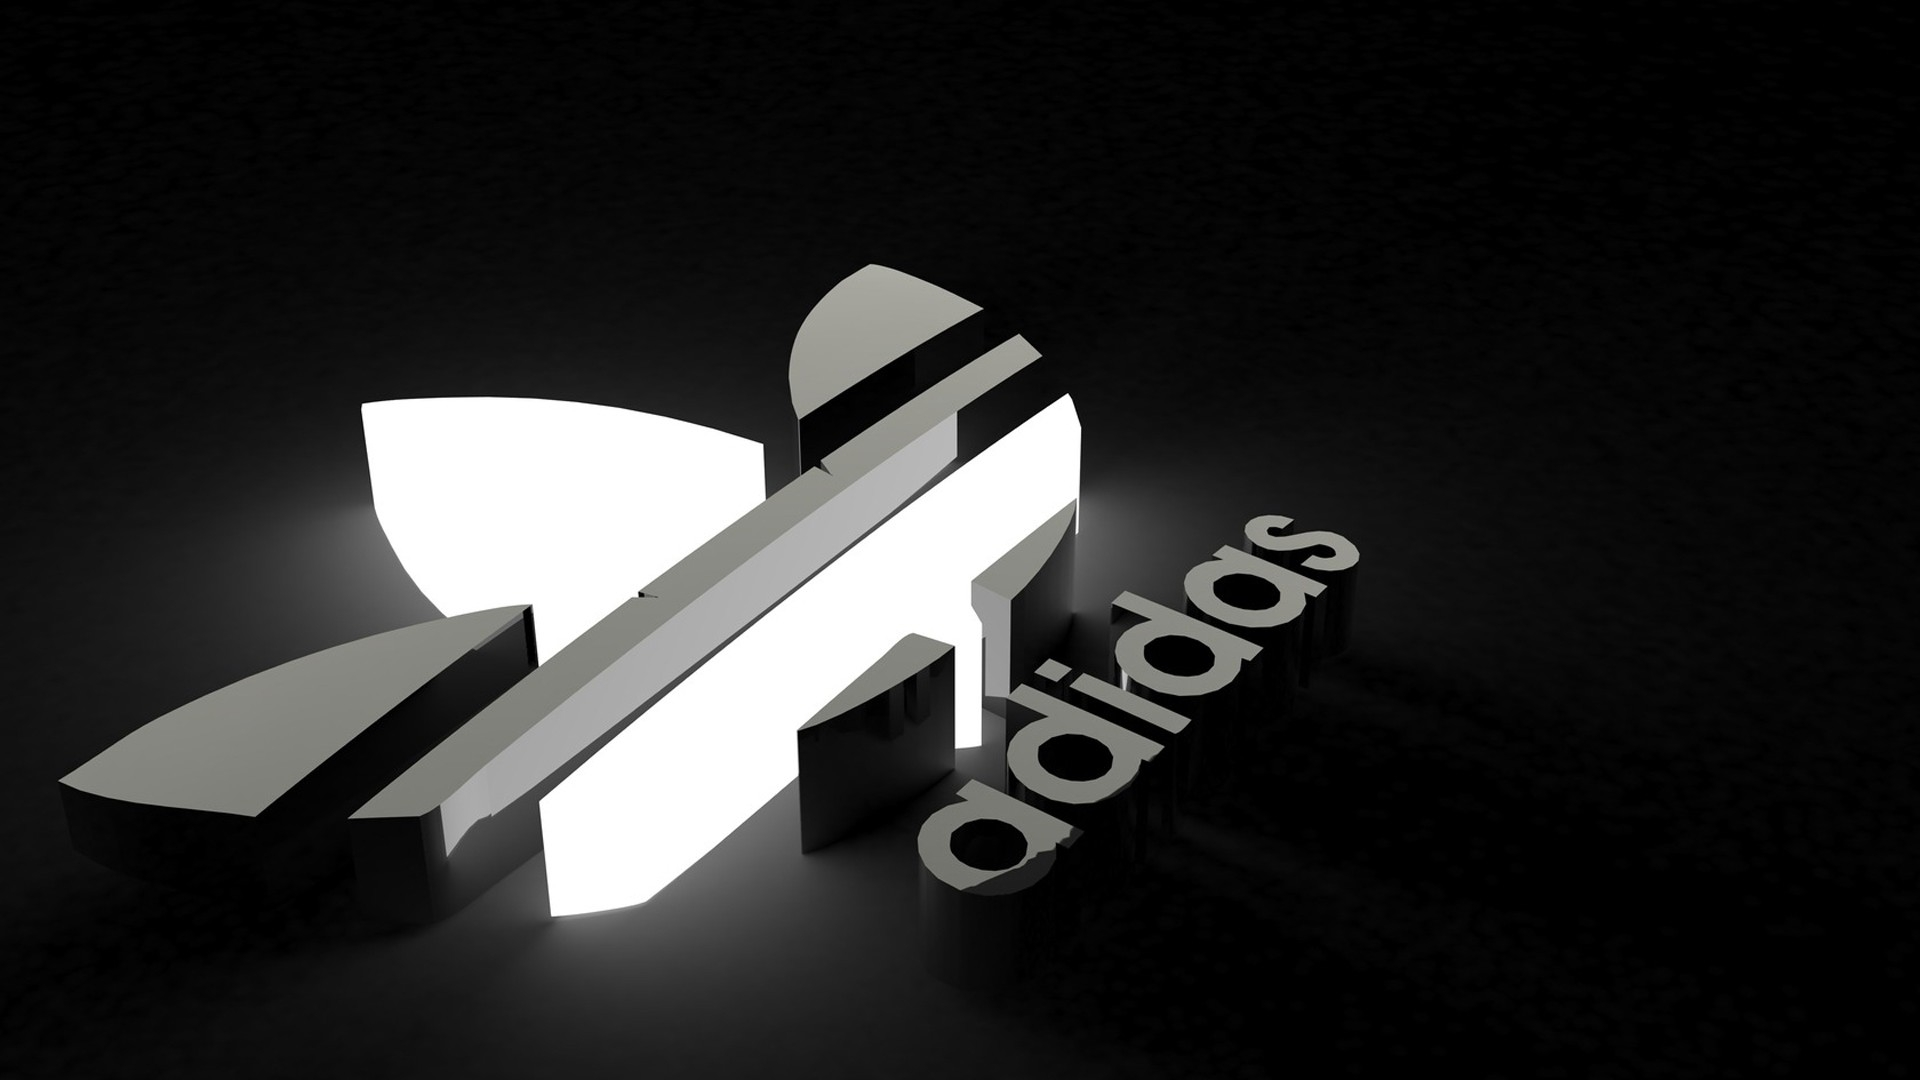 Adidas Wallpapers High Quality | Download Free -